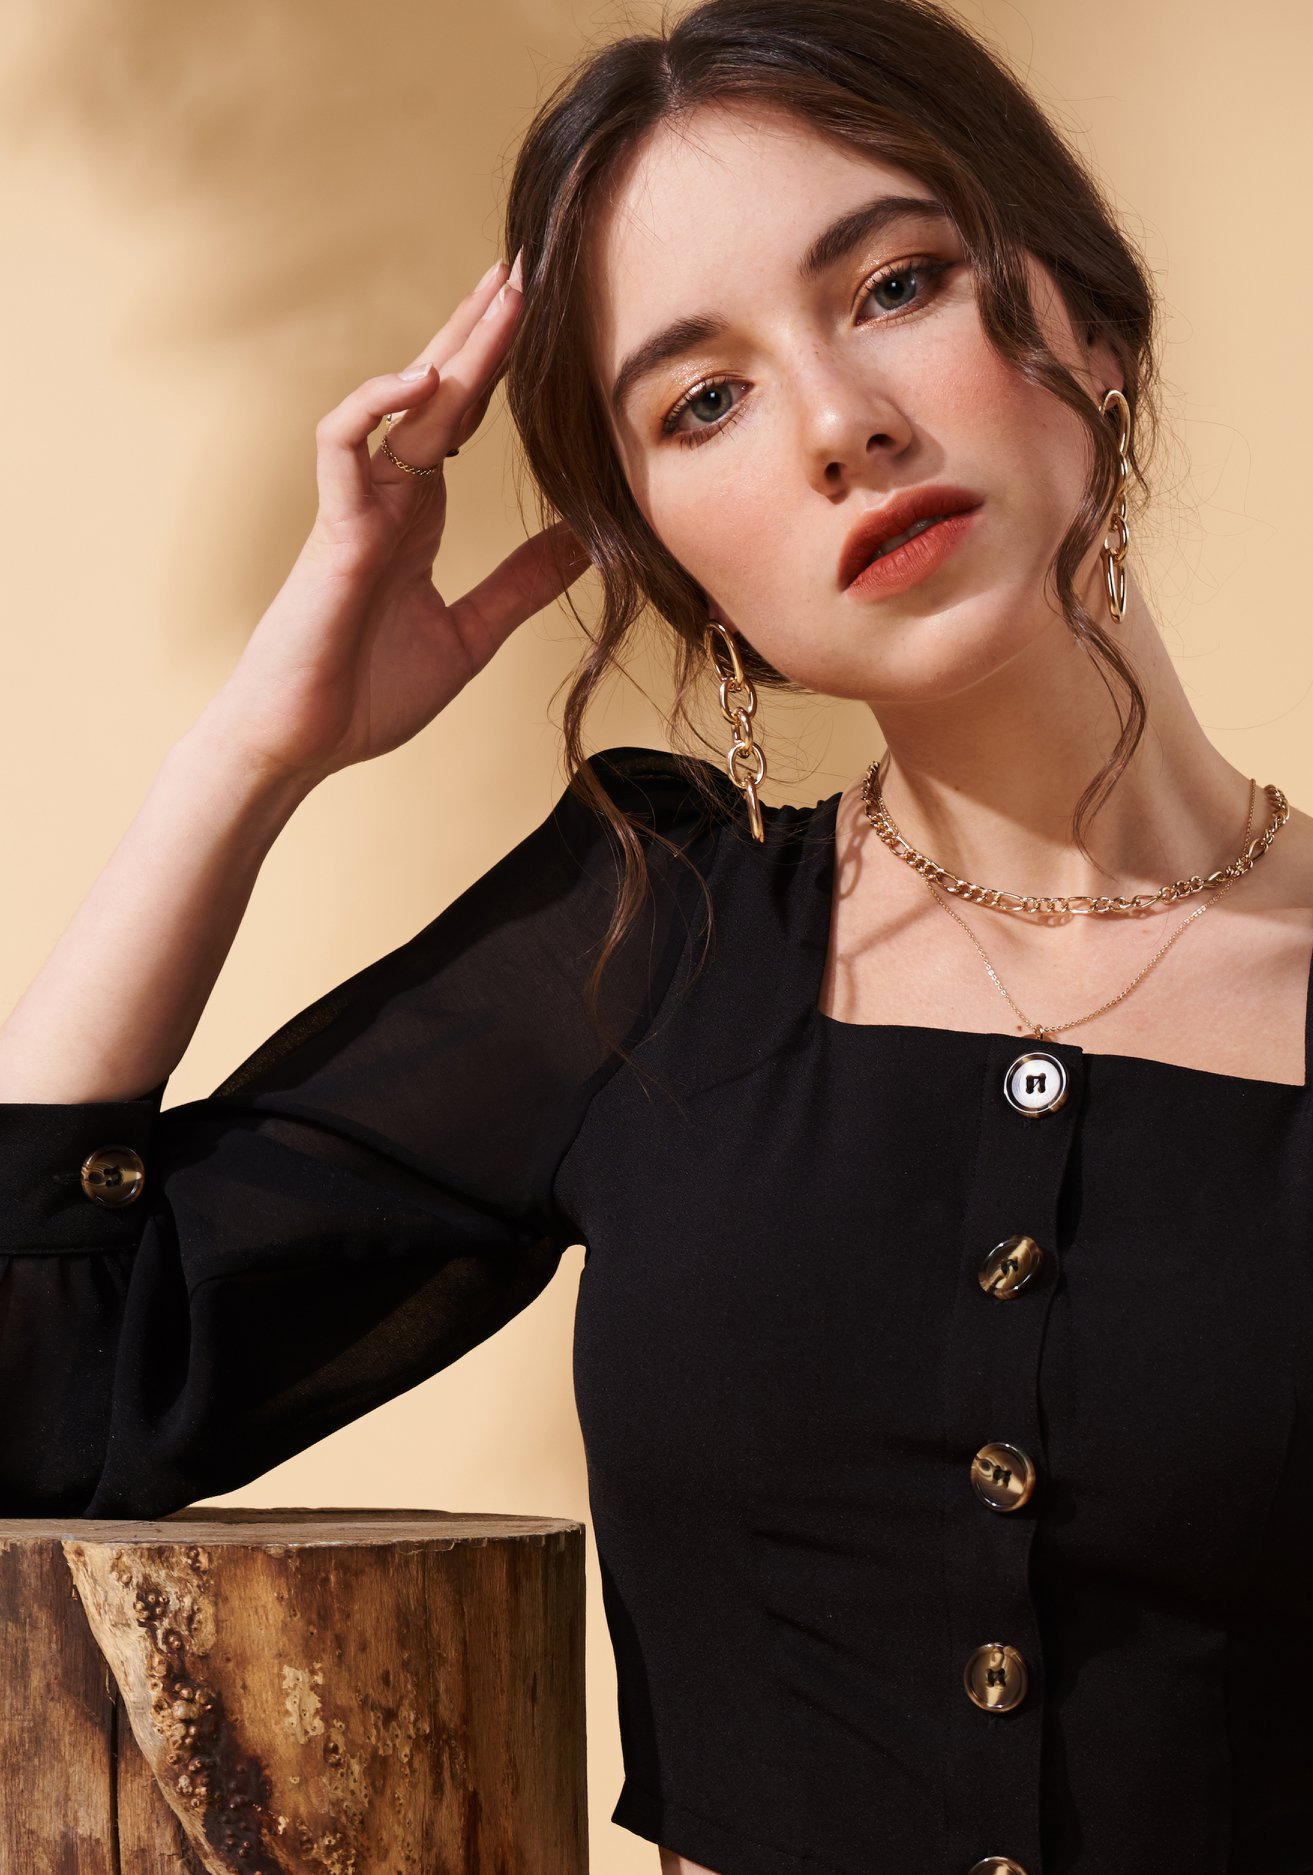 MIKI FOR WOMAN – TOPS COLLECTION